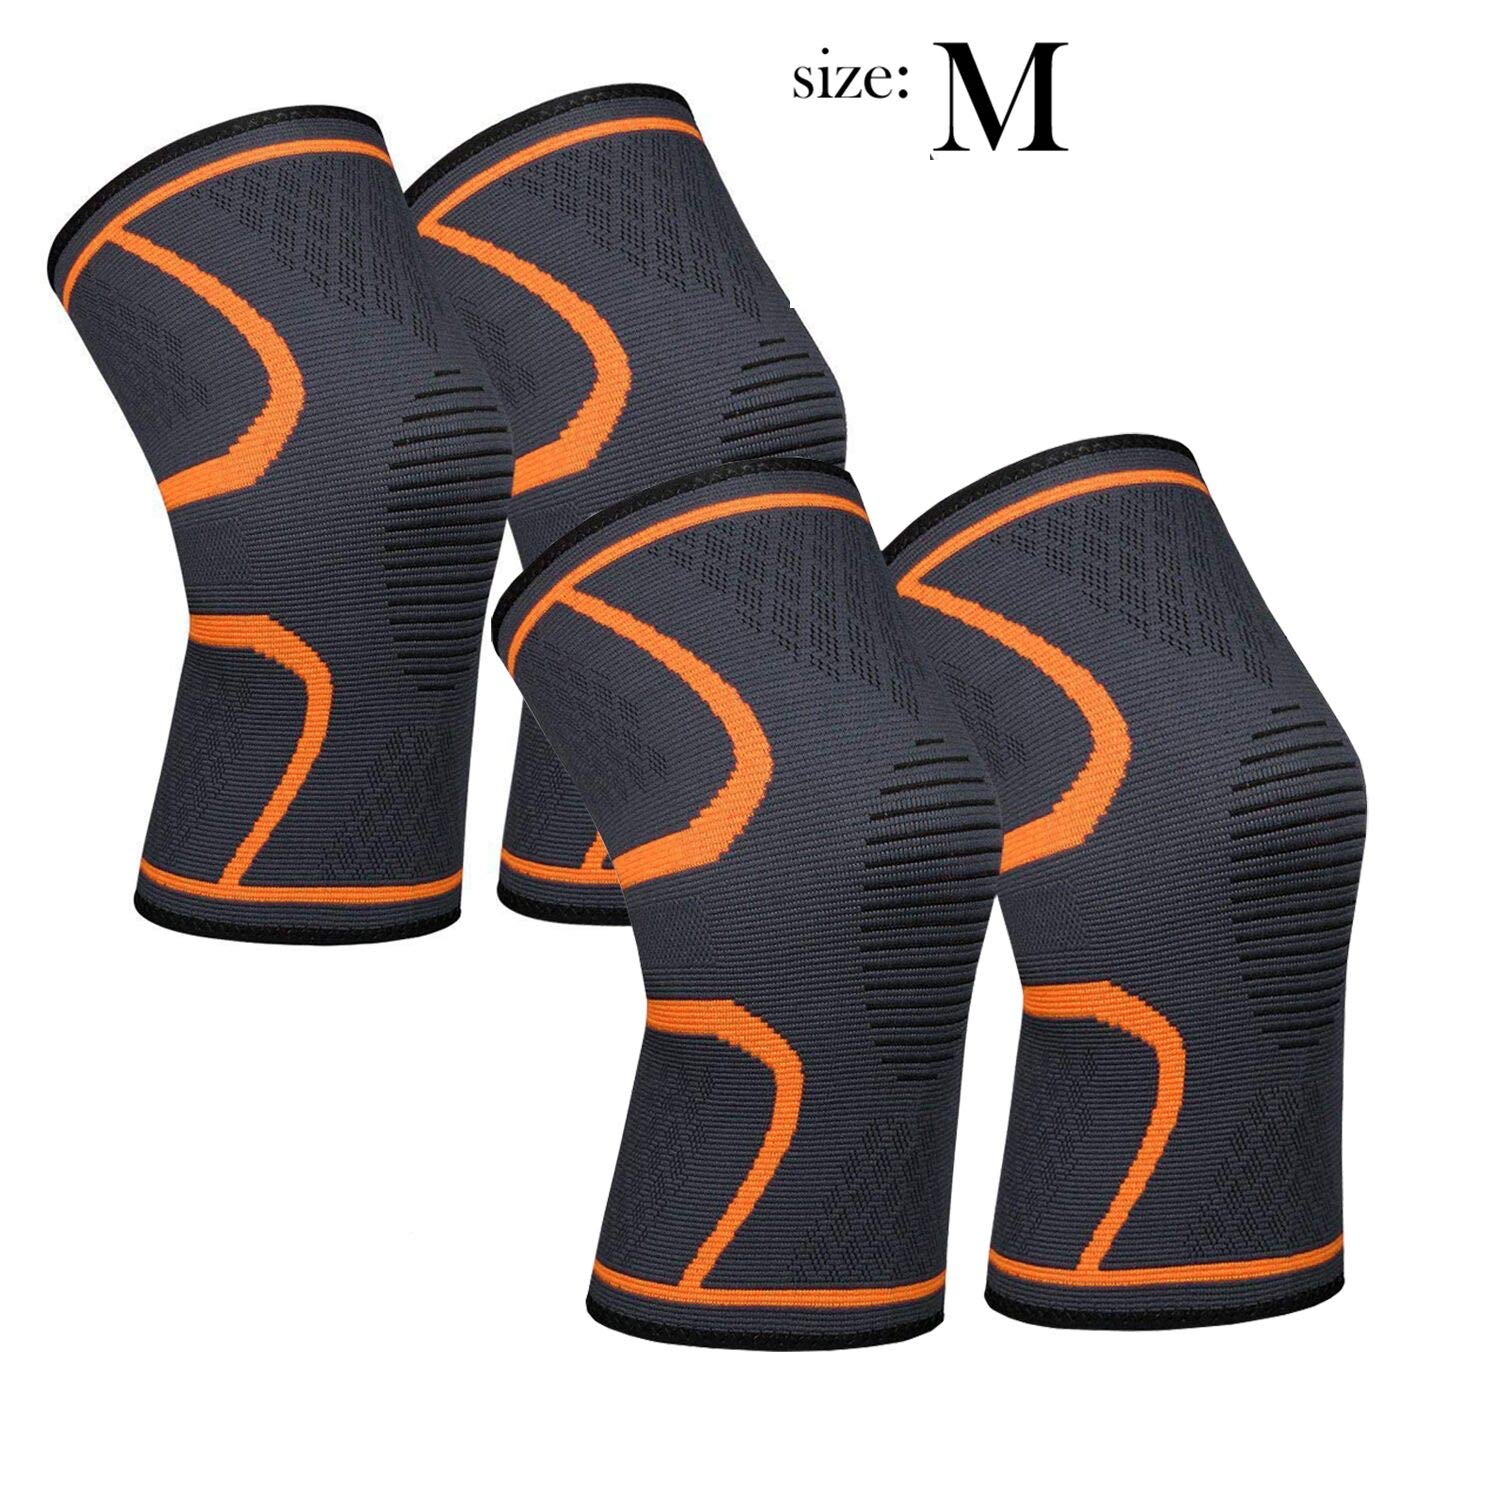 711TEK Knee Sleeve, Compression Knee Brace for Knee Pain - Premium Recovery Knee Support for Running, Jogging, Sports, Joint Pain Relief, Arthritis - for Men & Women (Orange-M-4Pcs)